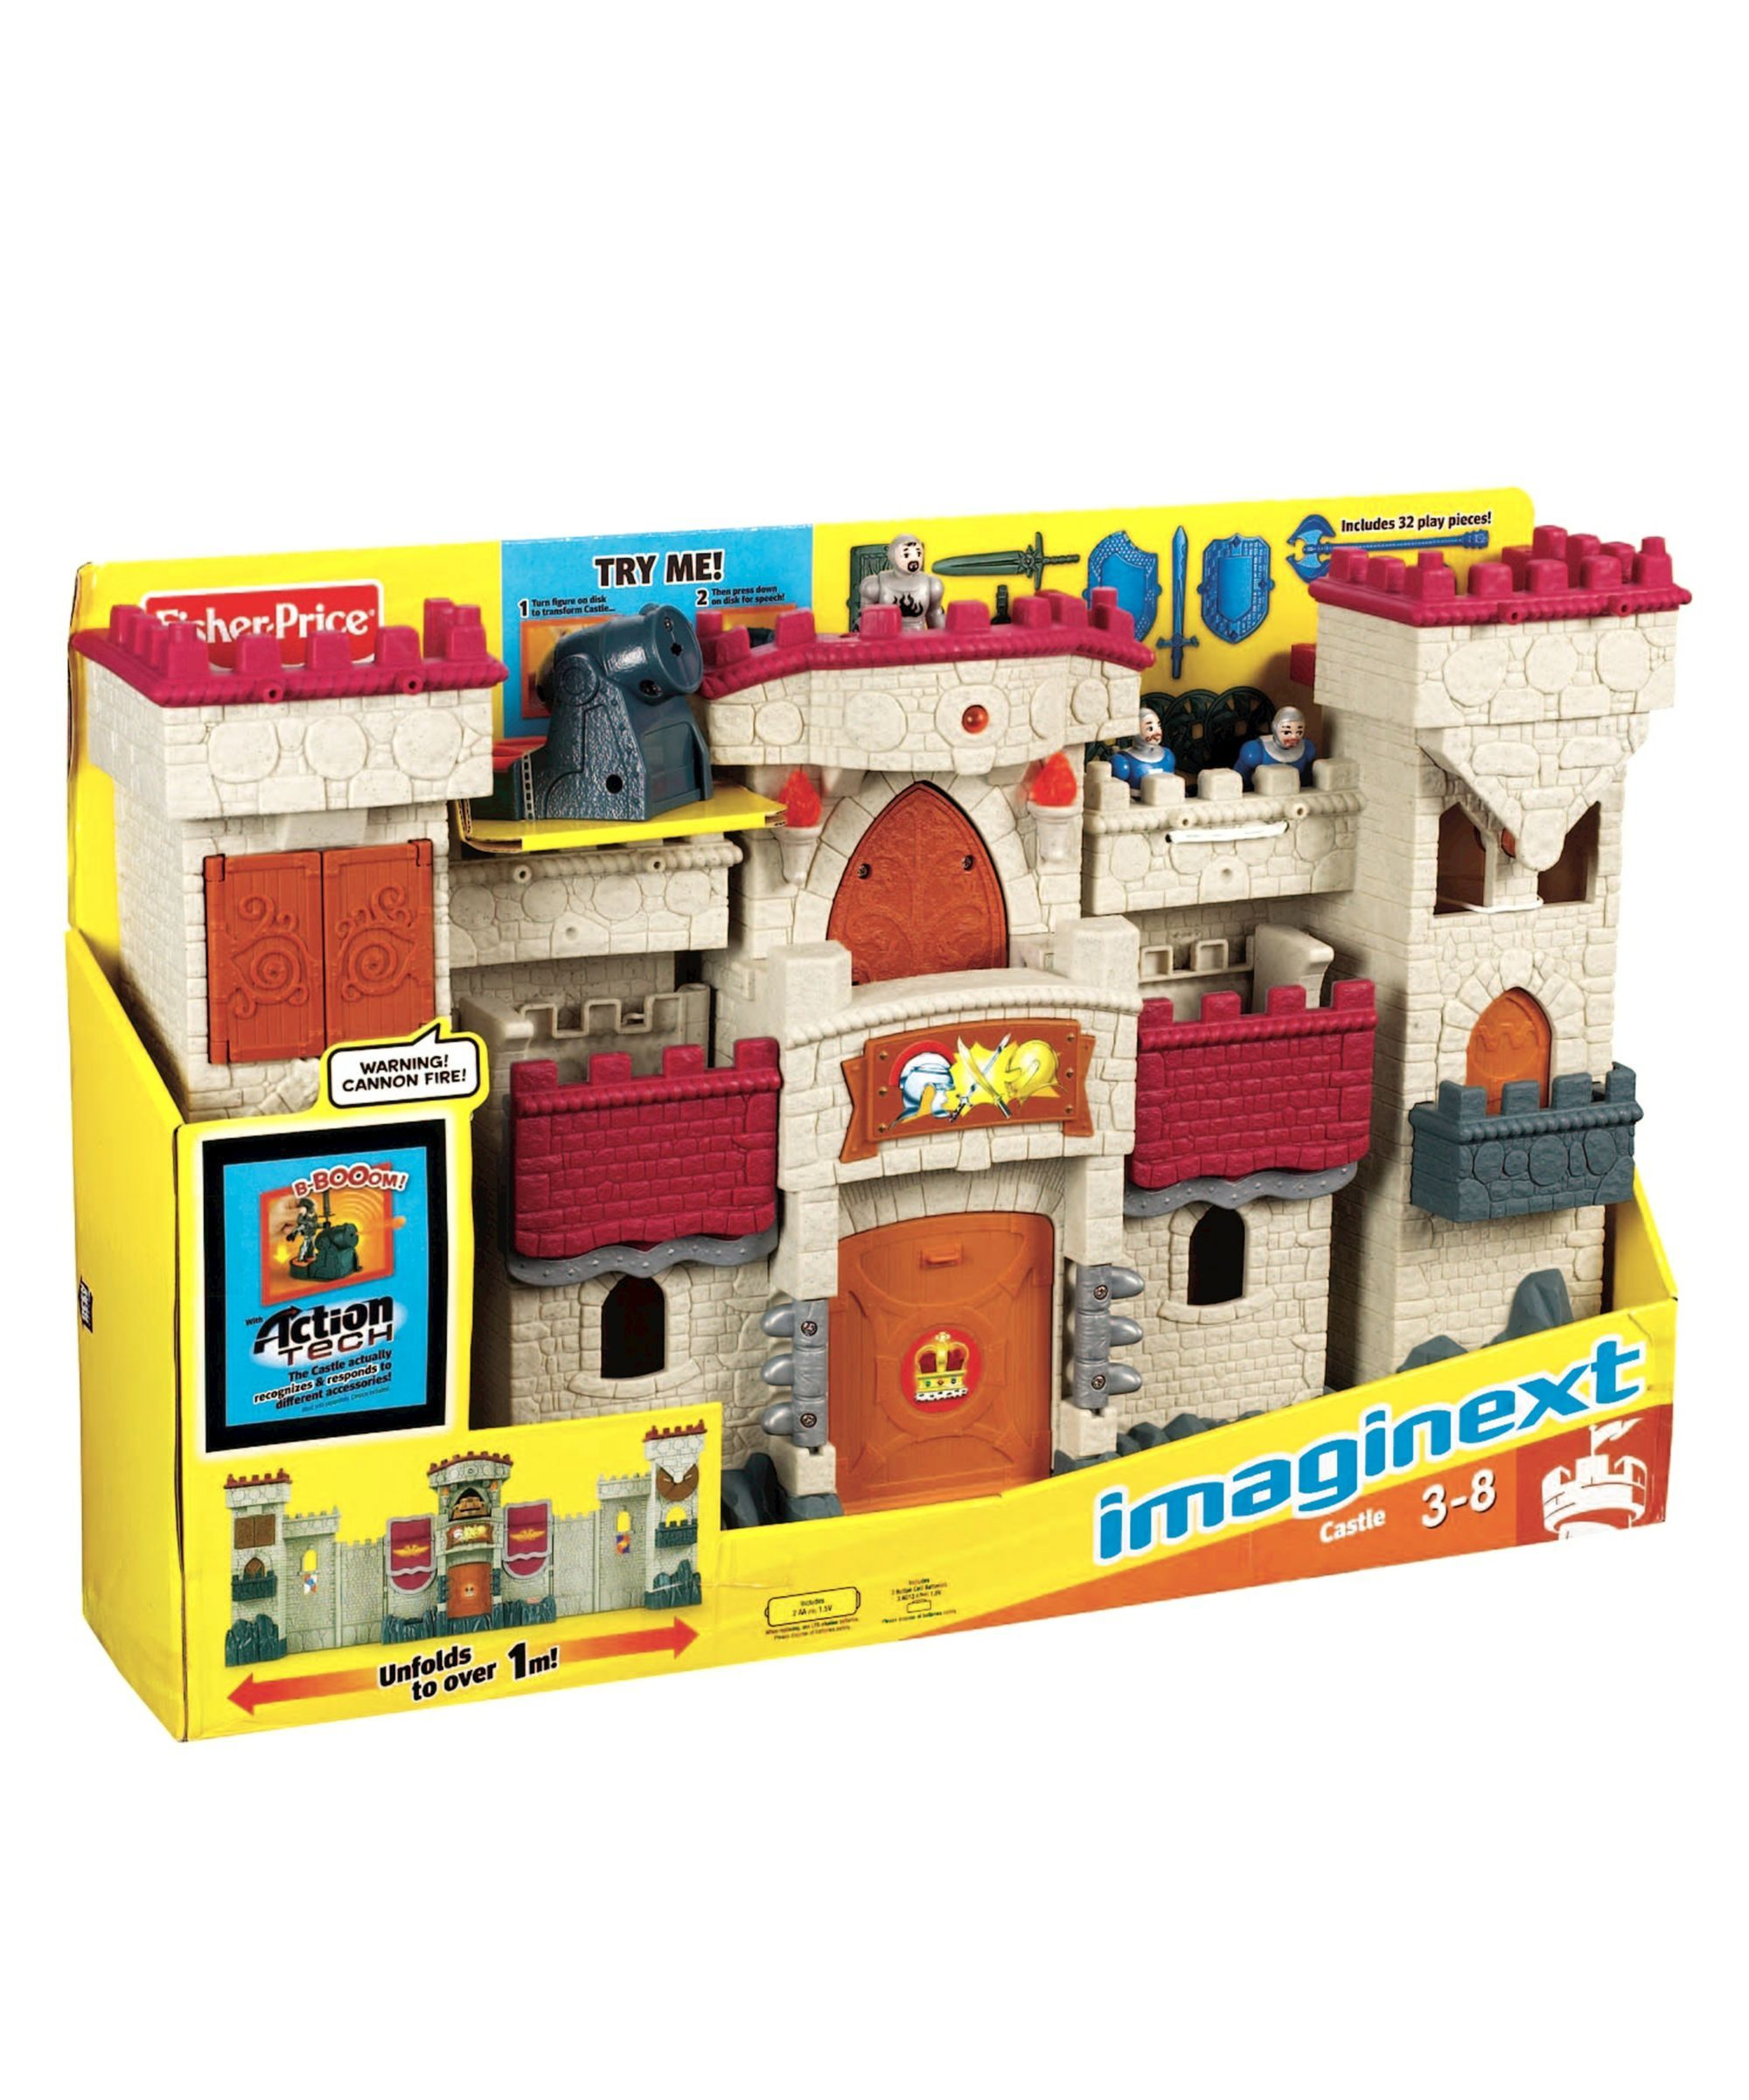 Fisher Price Imaginext Castle Toy castle, Presents for